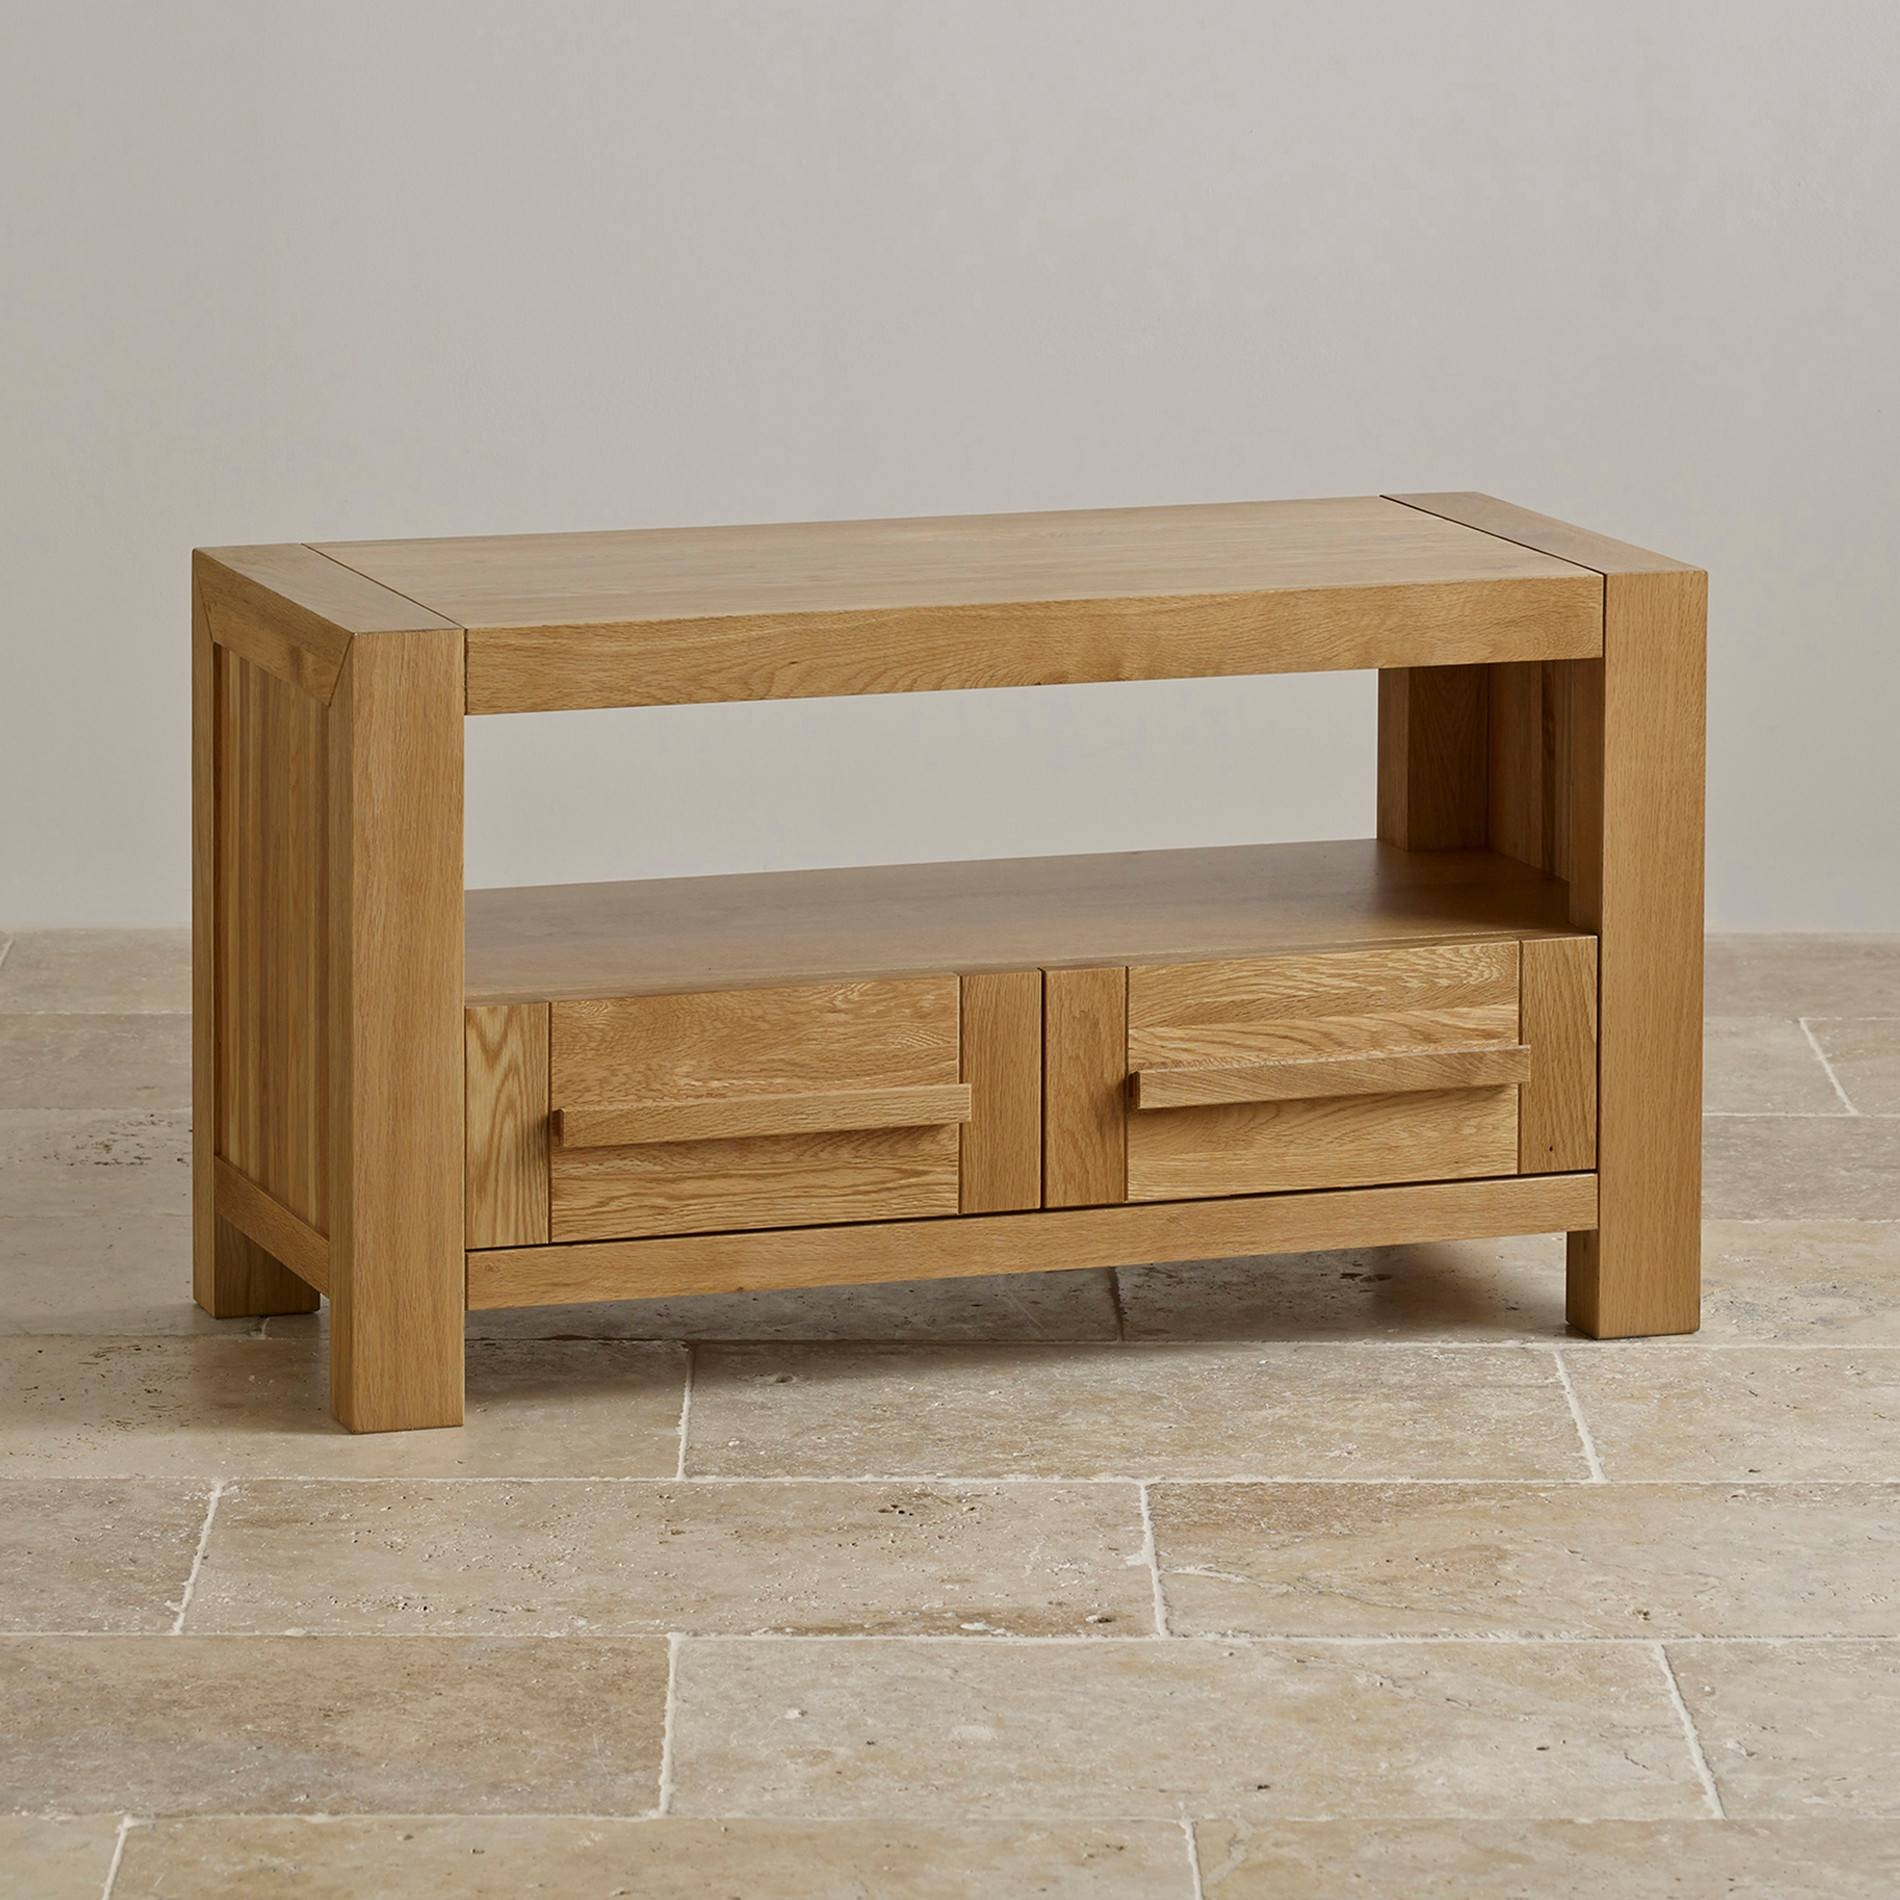 Fresco 2 Drawer Tv Cabinet In Solid Oak | Oak Furniture Land in Solid Oak Tv Cabinets (Image 5 of 15)